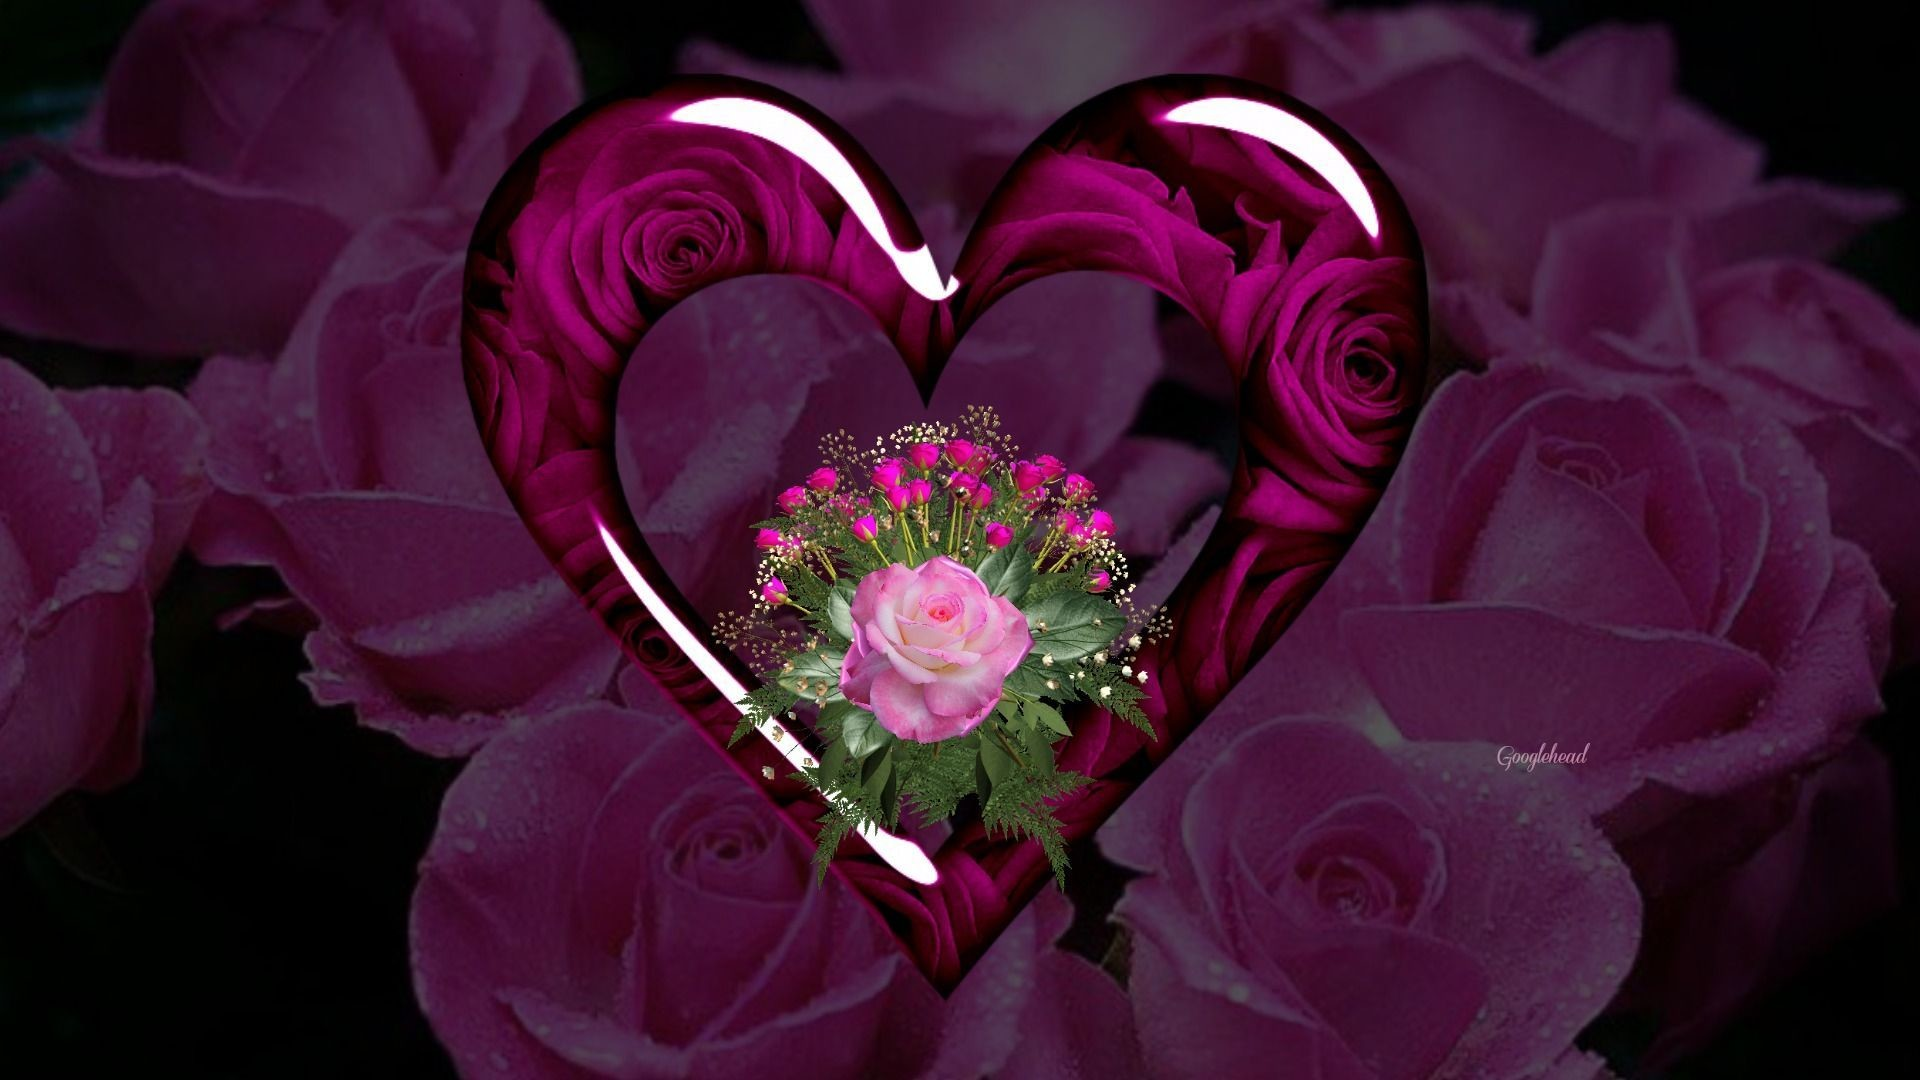 Purple hearts backgrounds 47 images - Pink roses and hearts wallpaper ...